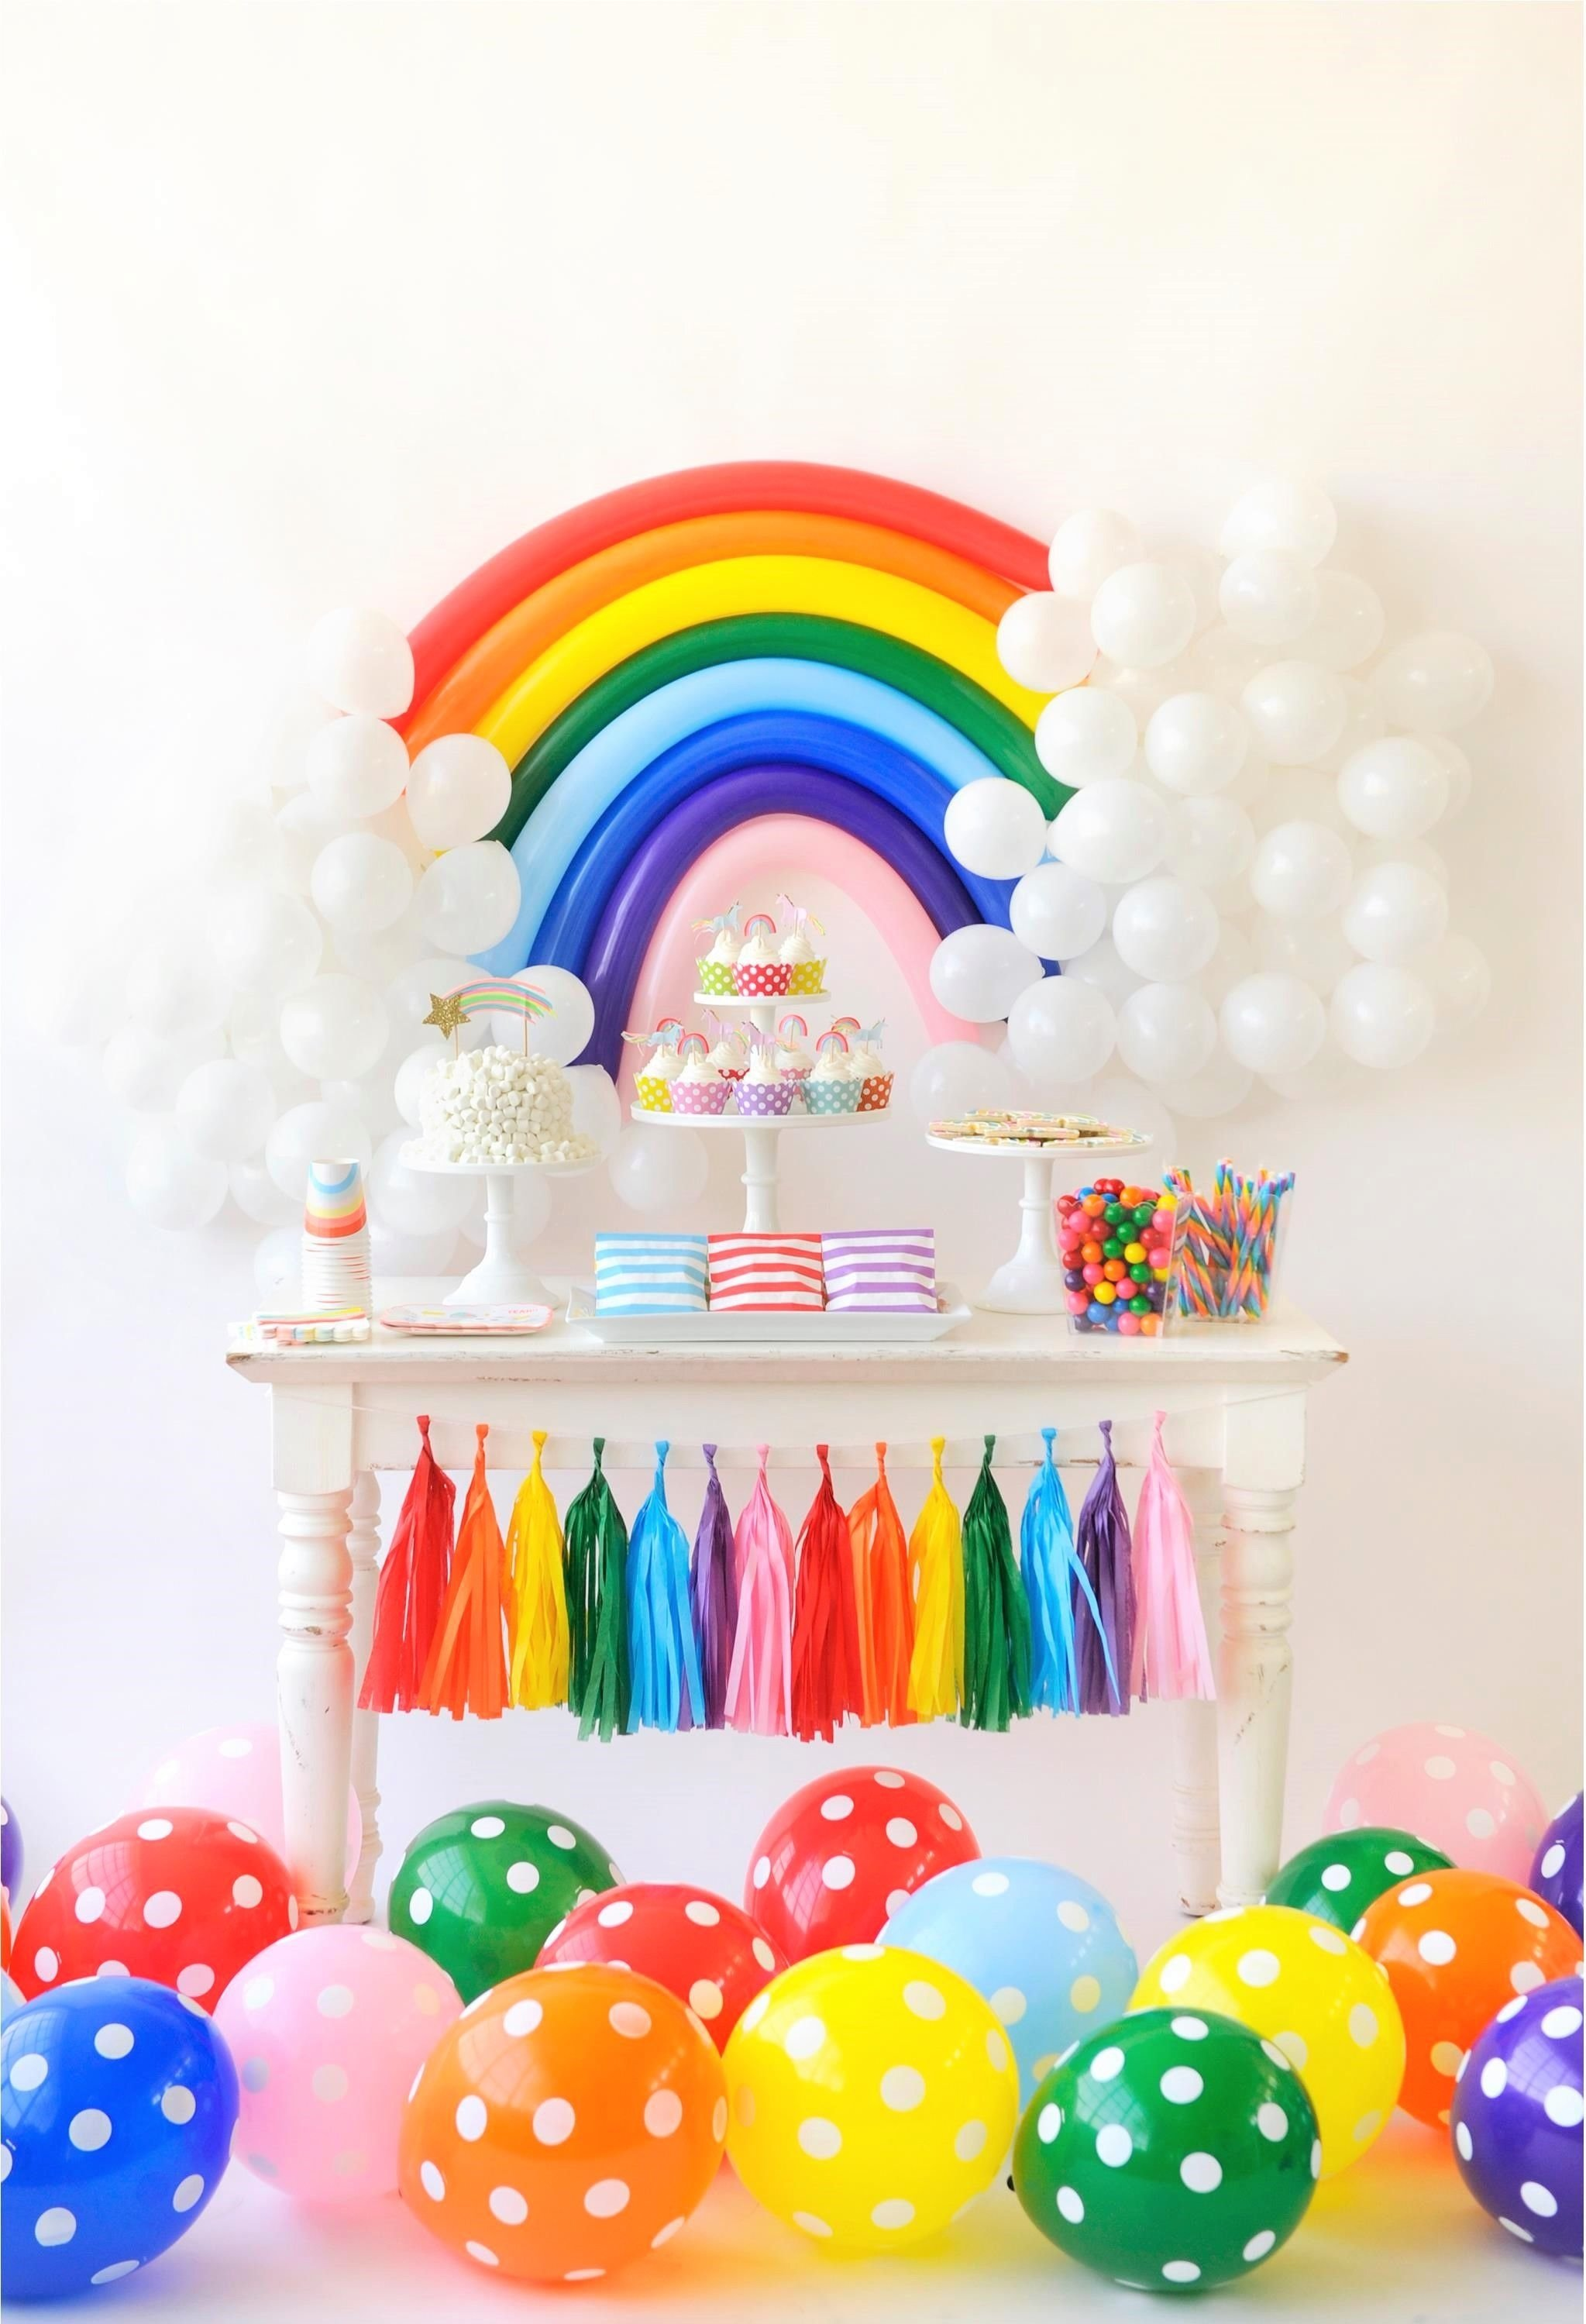 10 Nice Ideas For Kids Birthday Party over the rainbow birthday party for kids colorful birthday party 2021